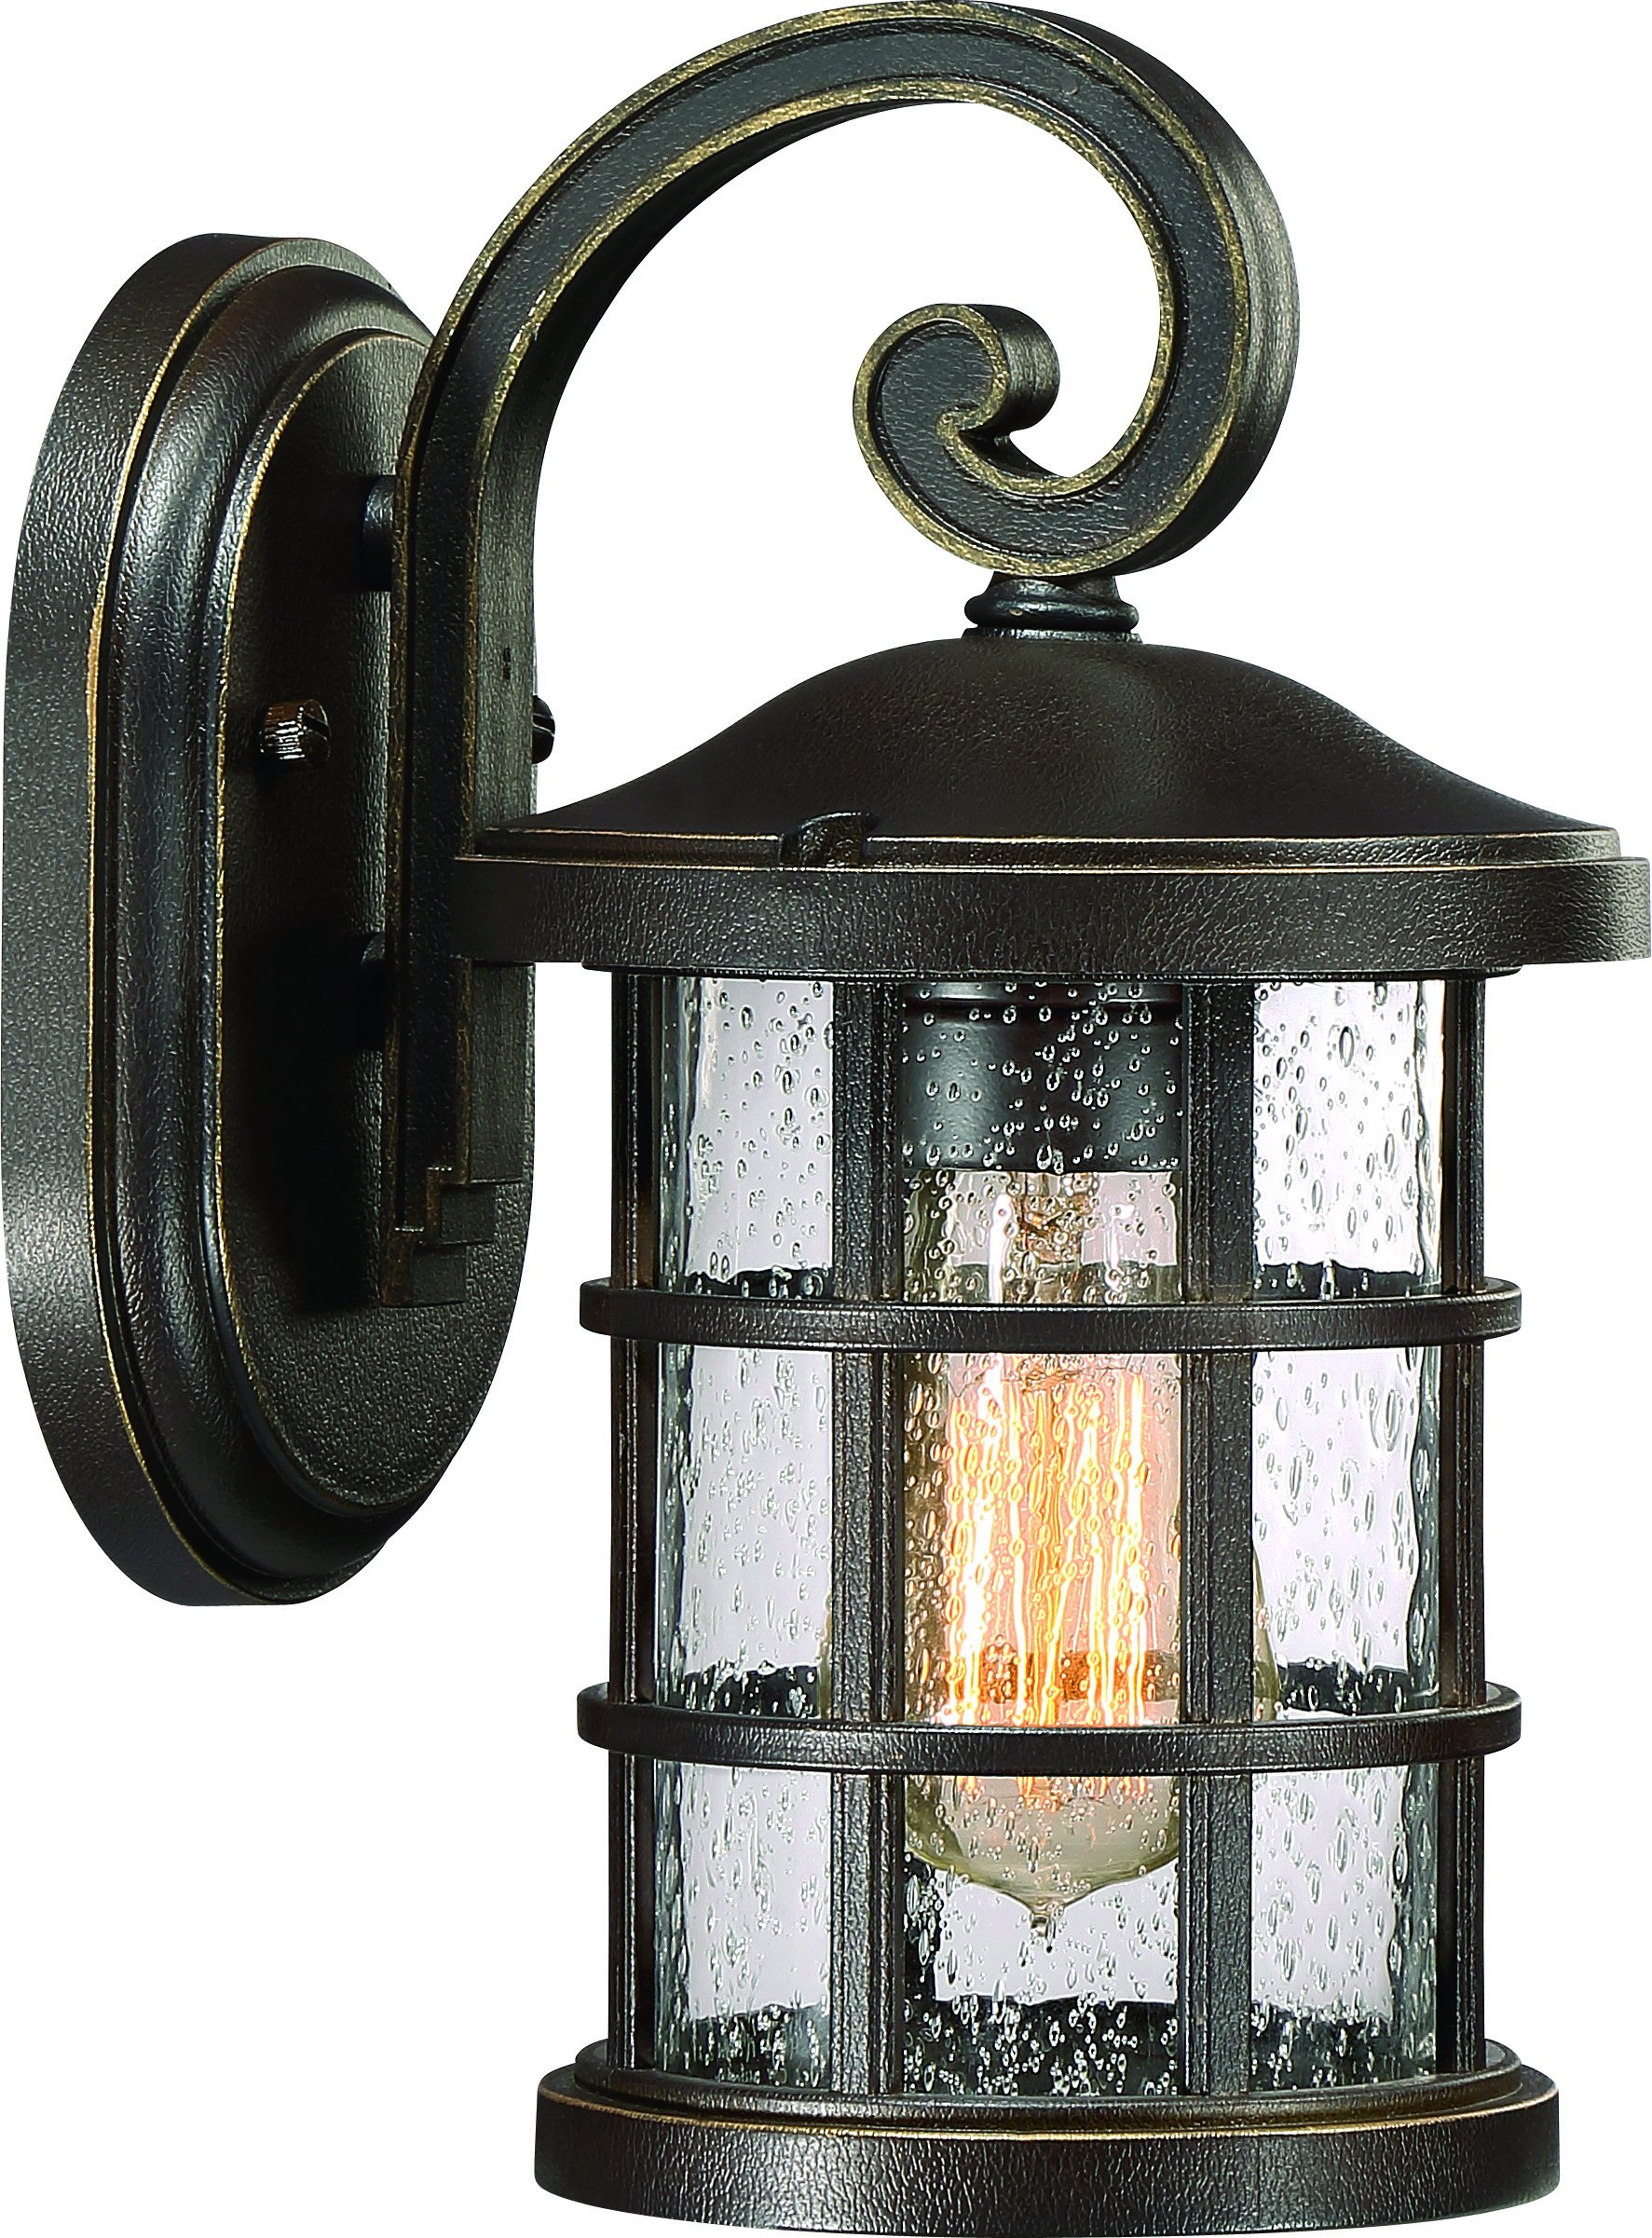 Luxury Craftsman Outdoor Wall Light, Small Size: 11'' H x 6'' W, with Tudor Style Elements, Wrought Iron Design, Oil Rubbed Parisian Bronze Finish and Seeded Glass, UQL1041 by Urban Ambiance by Urban Ambiance (Image #1)